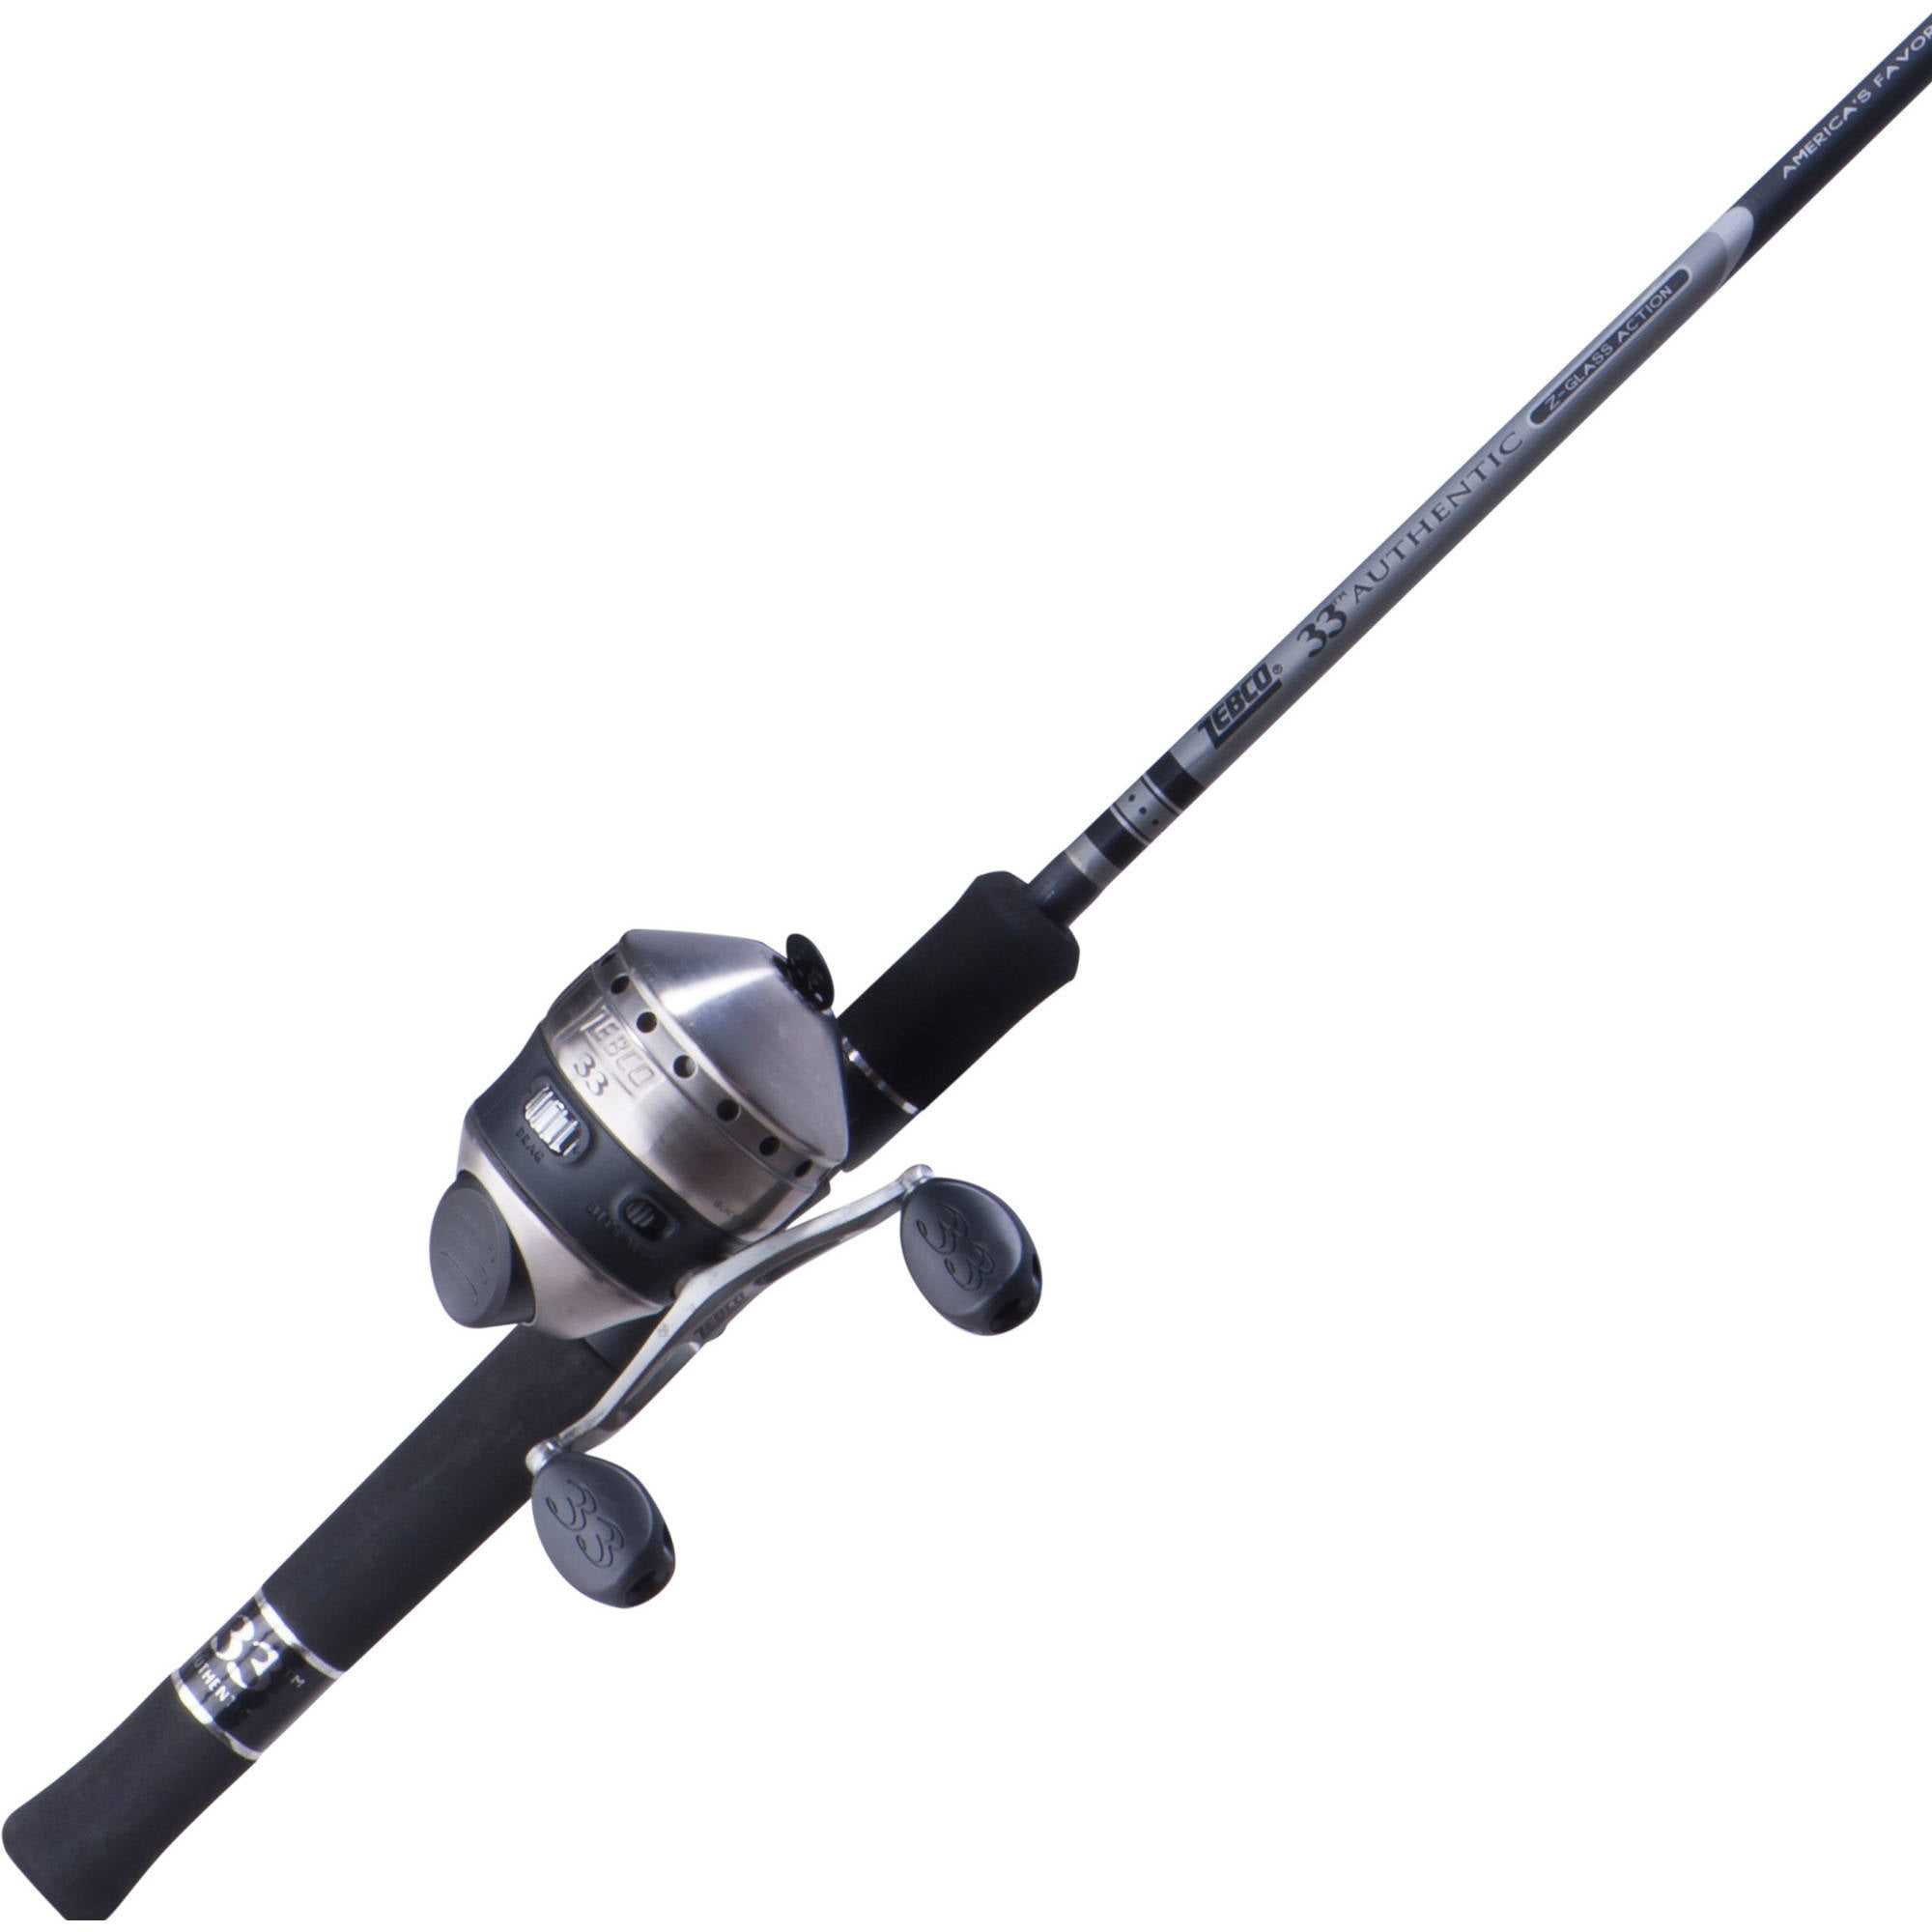 Zebco 33 Spincast Fishing Rod and Reel Combo - Walmart.com